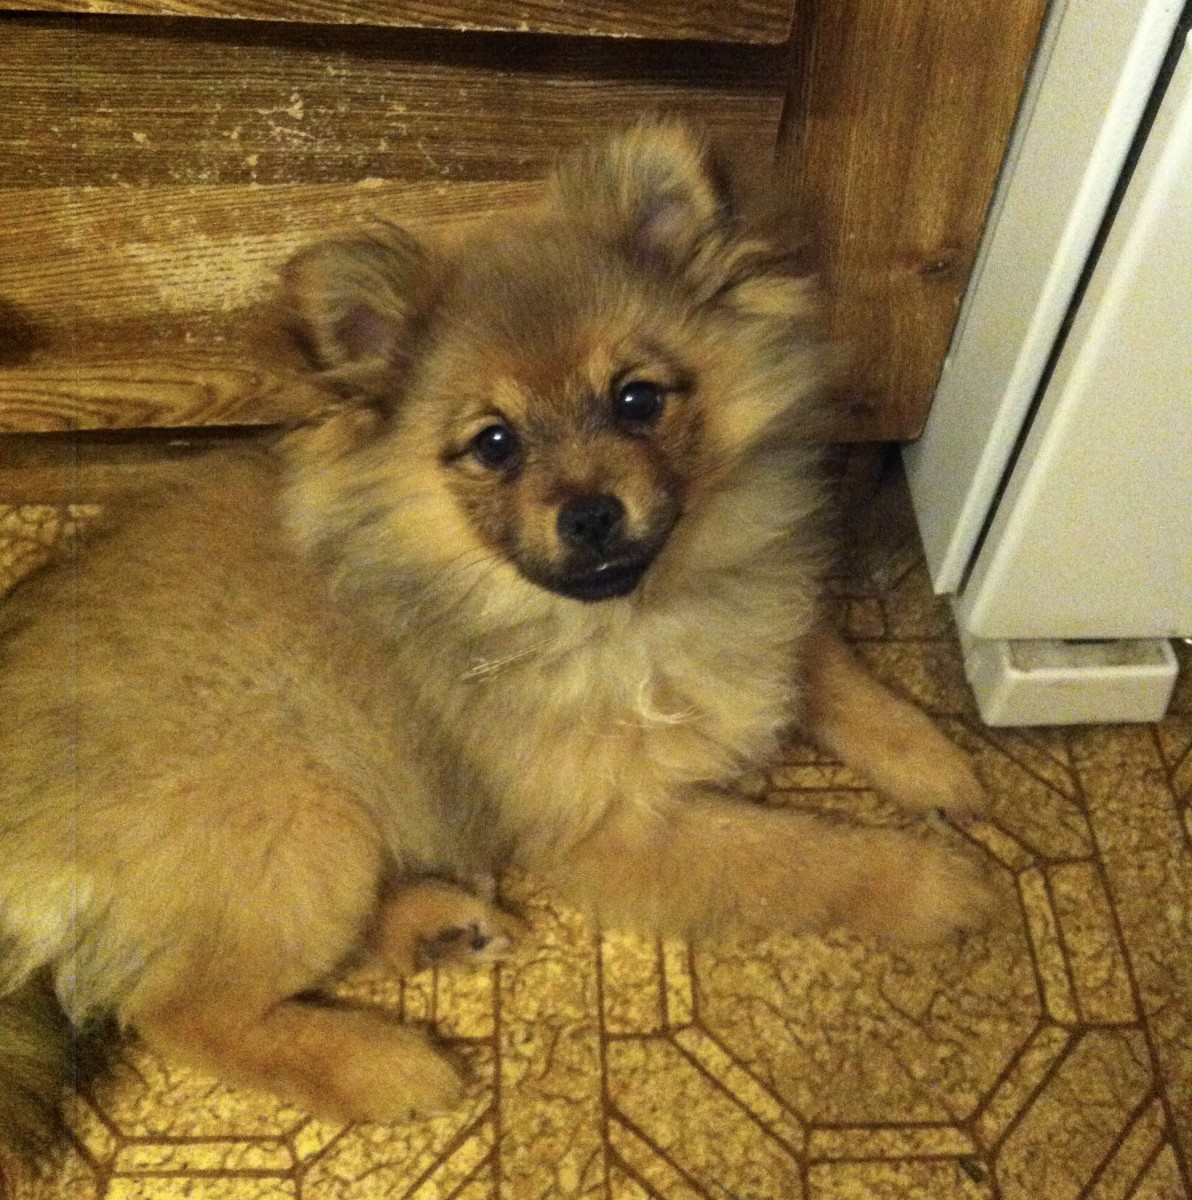 Caring for My Pomeranian